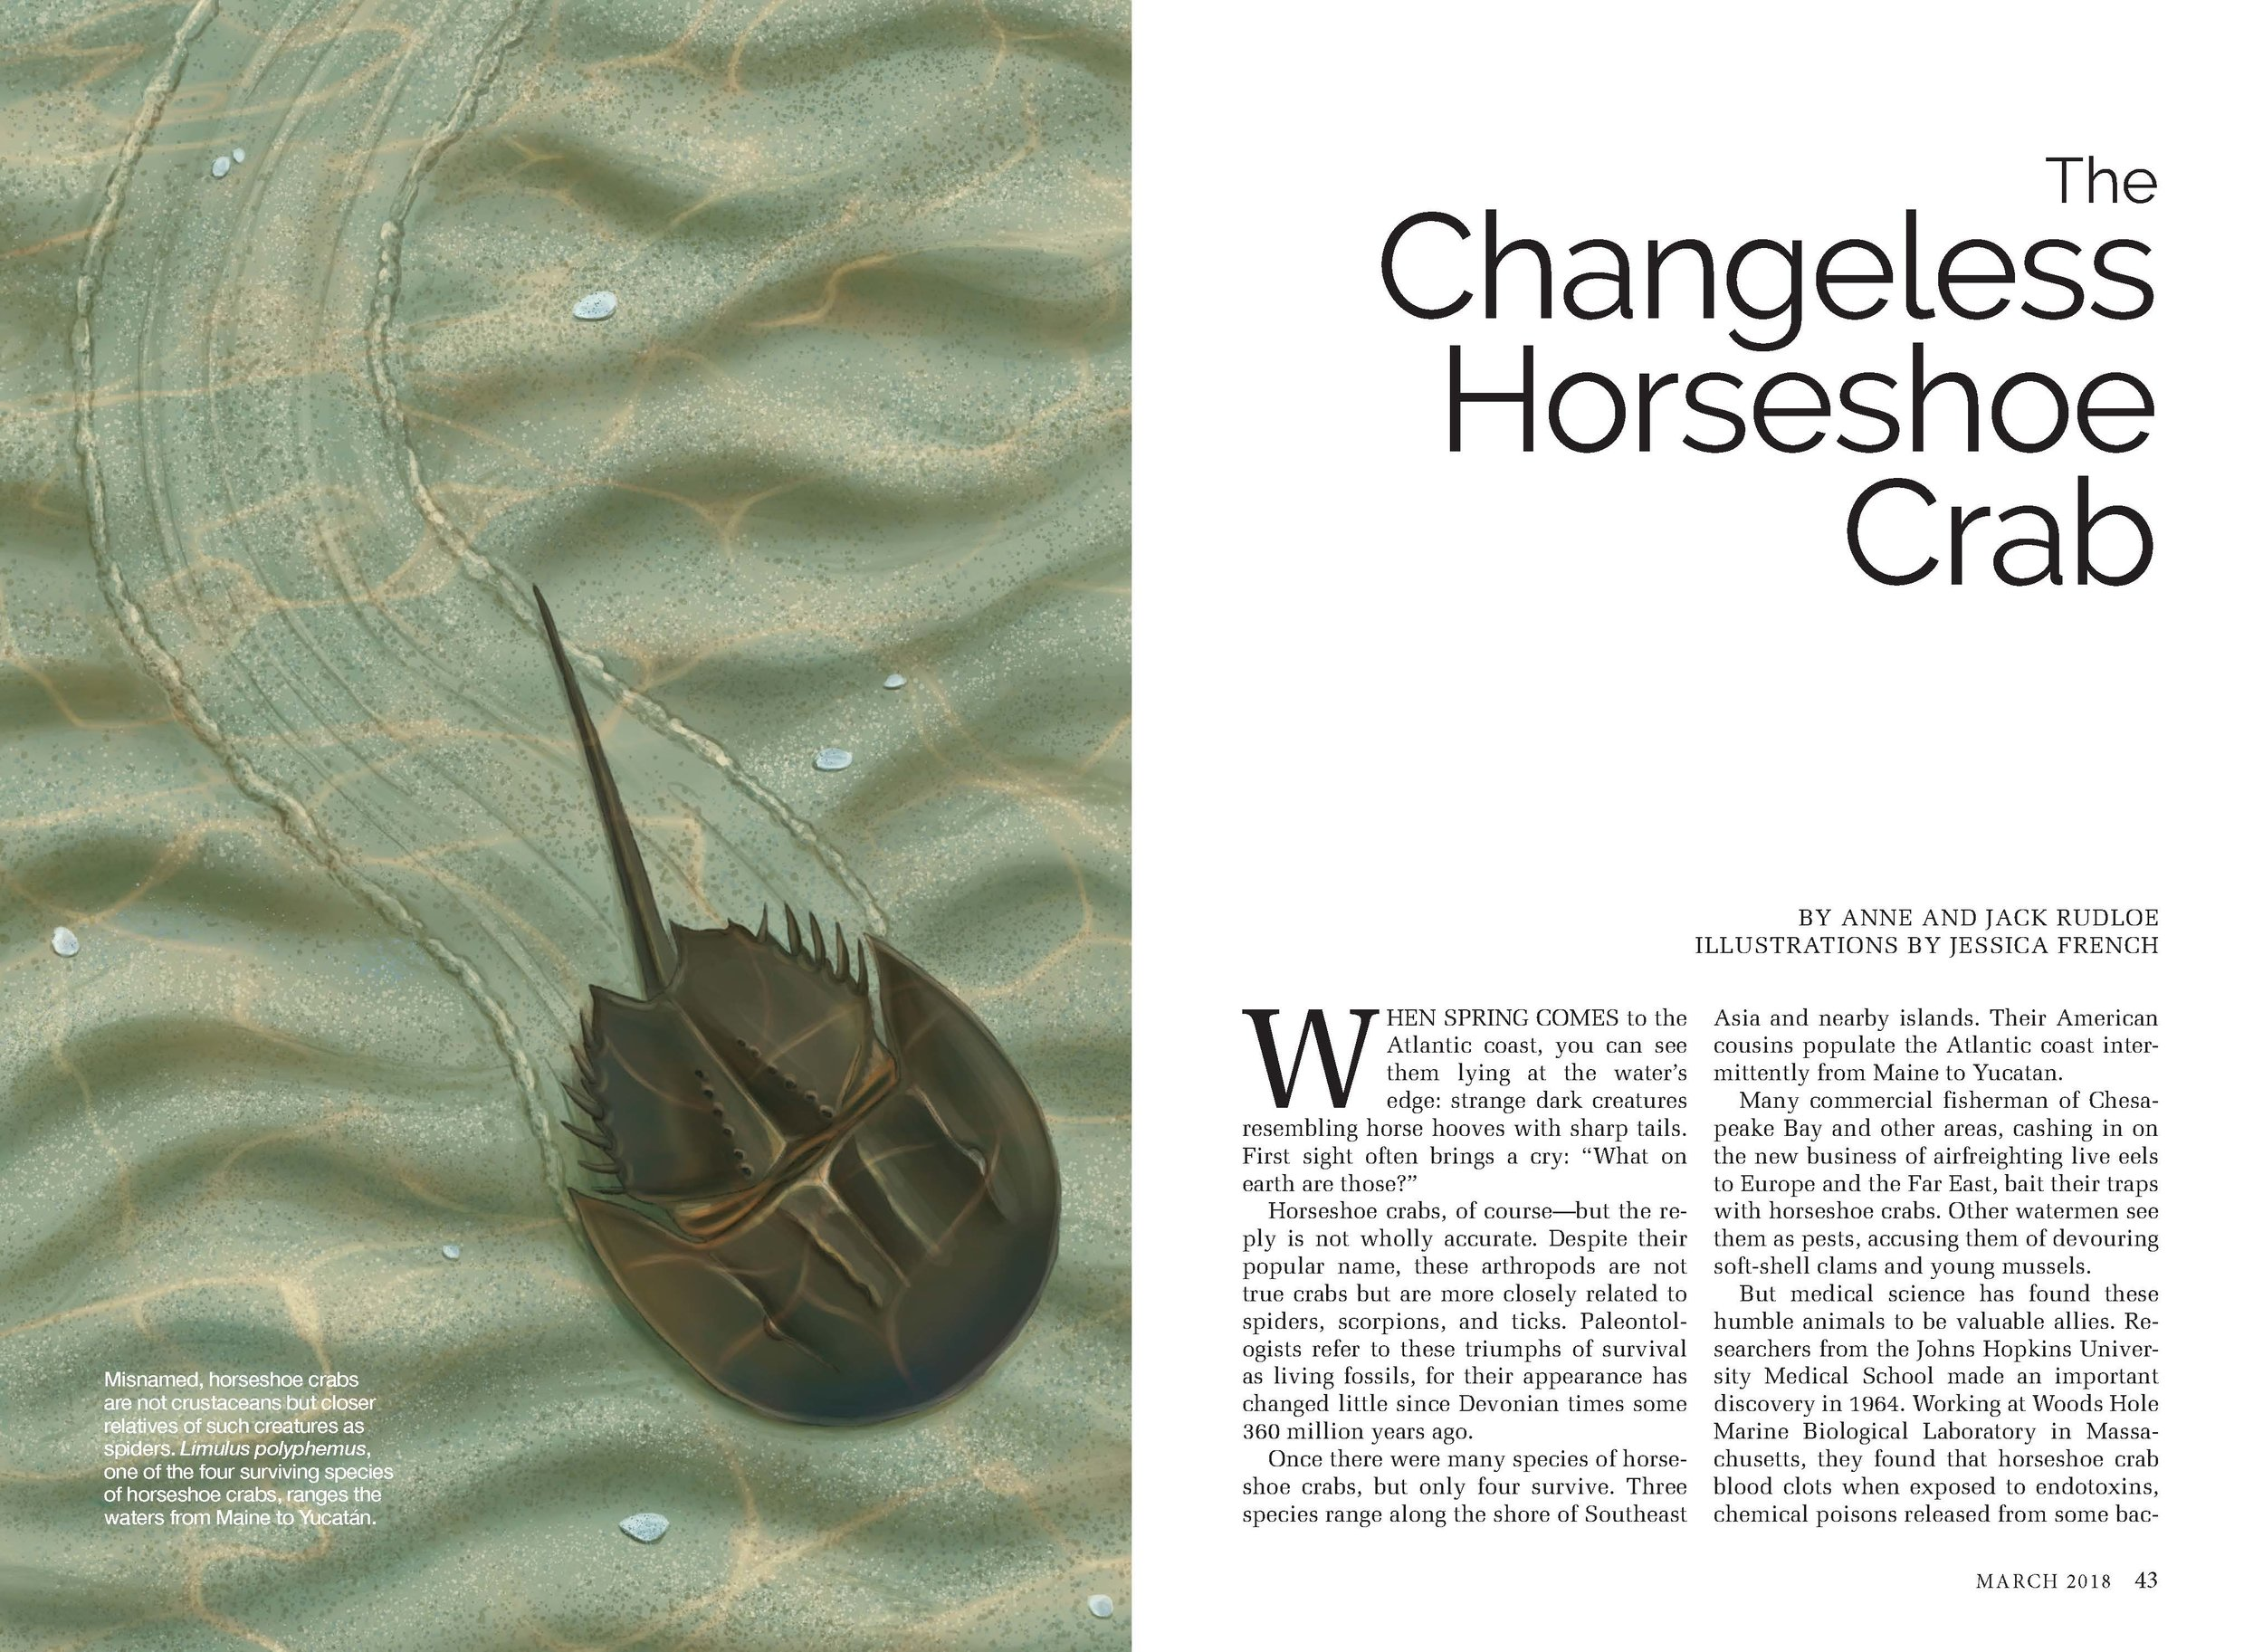 The Changeless Horseshoe Crab